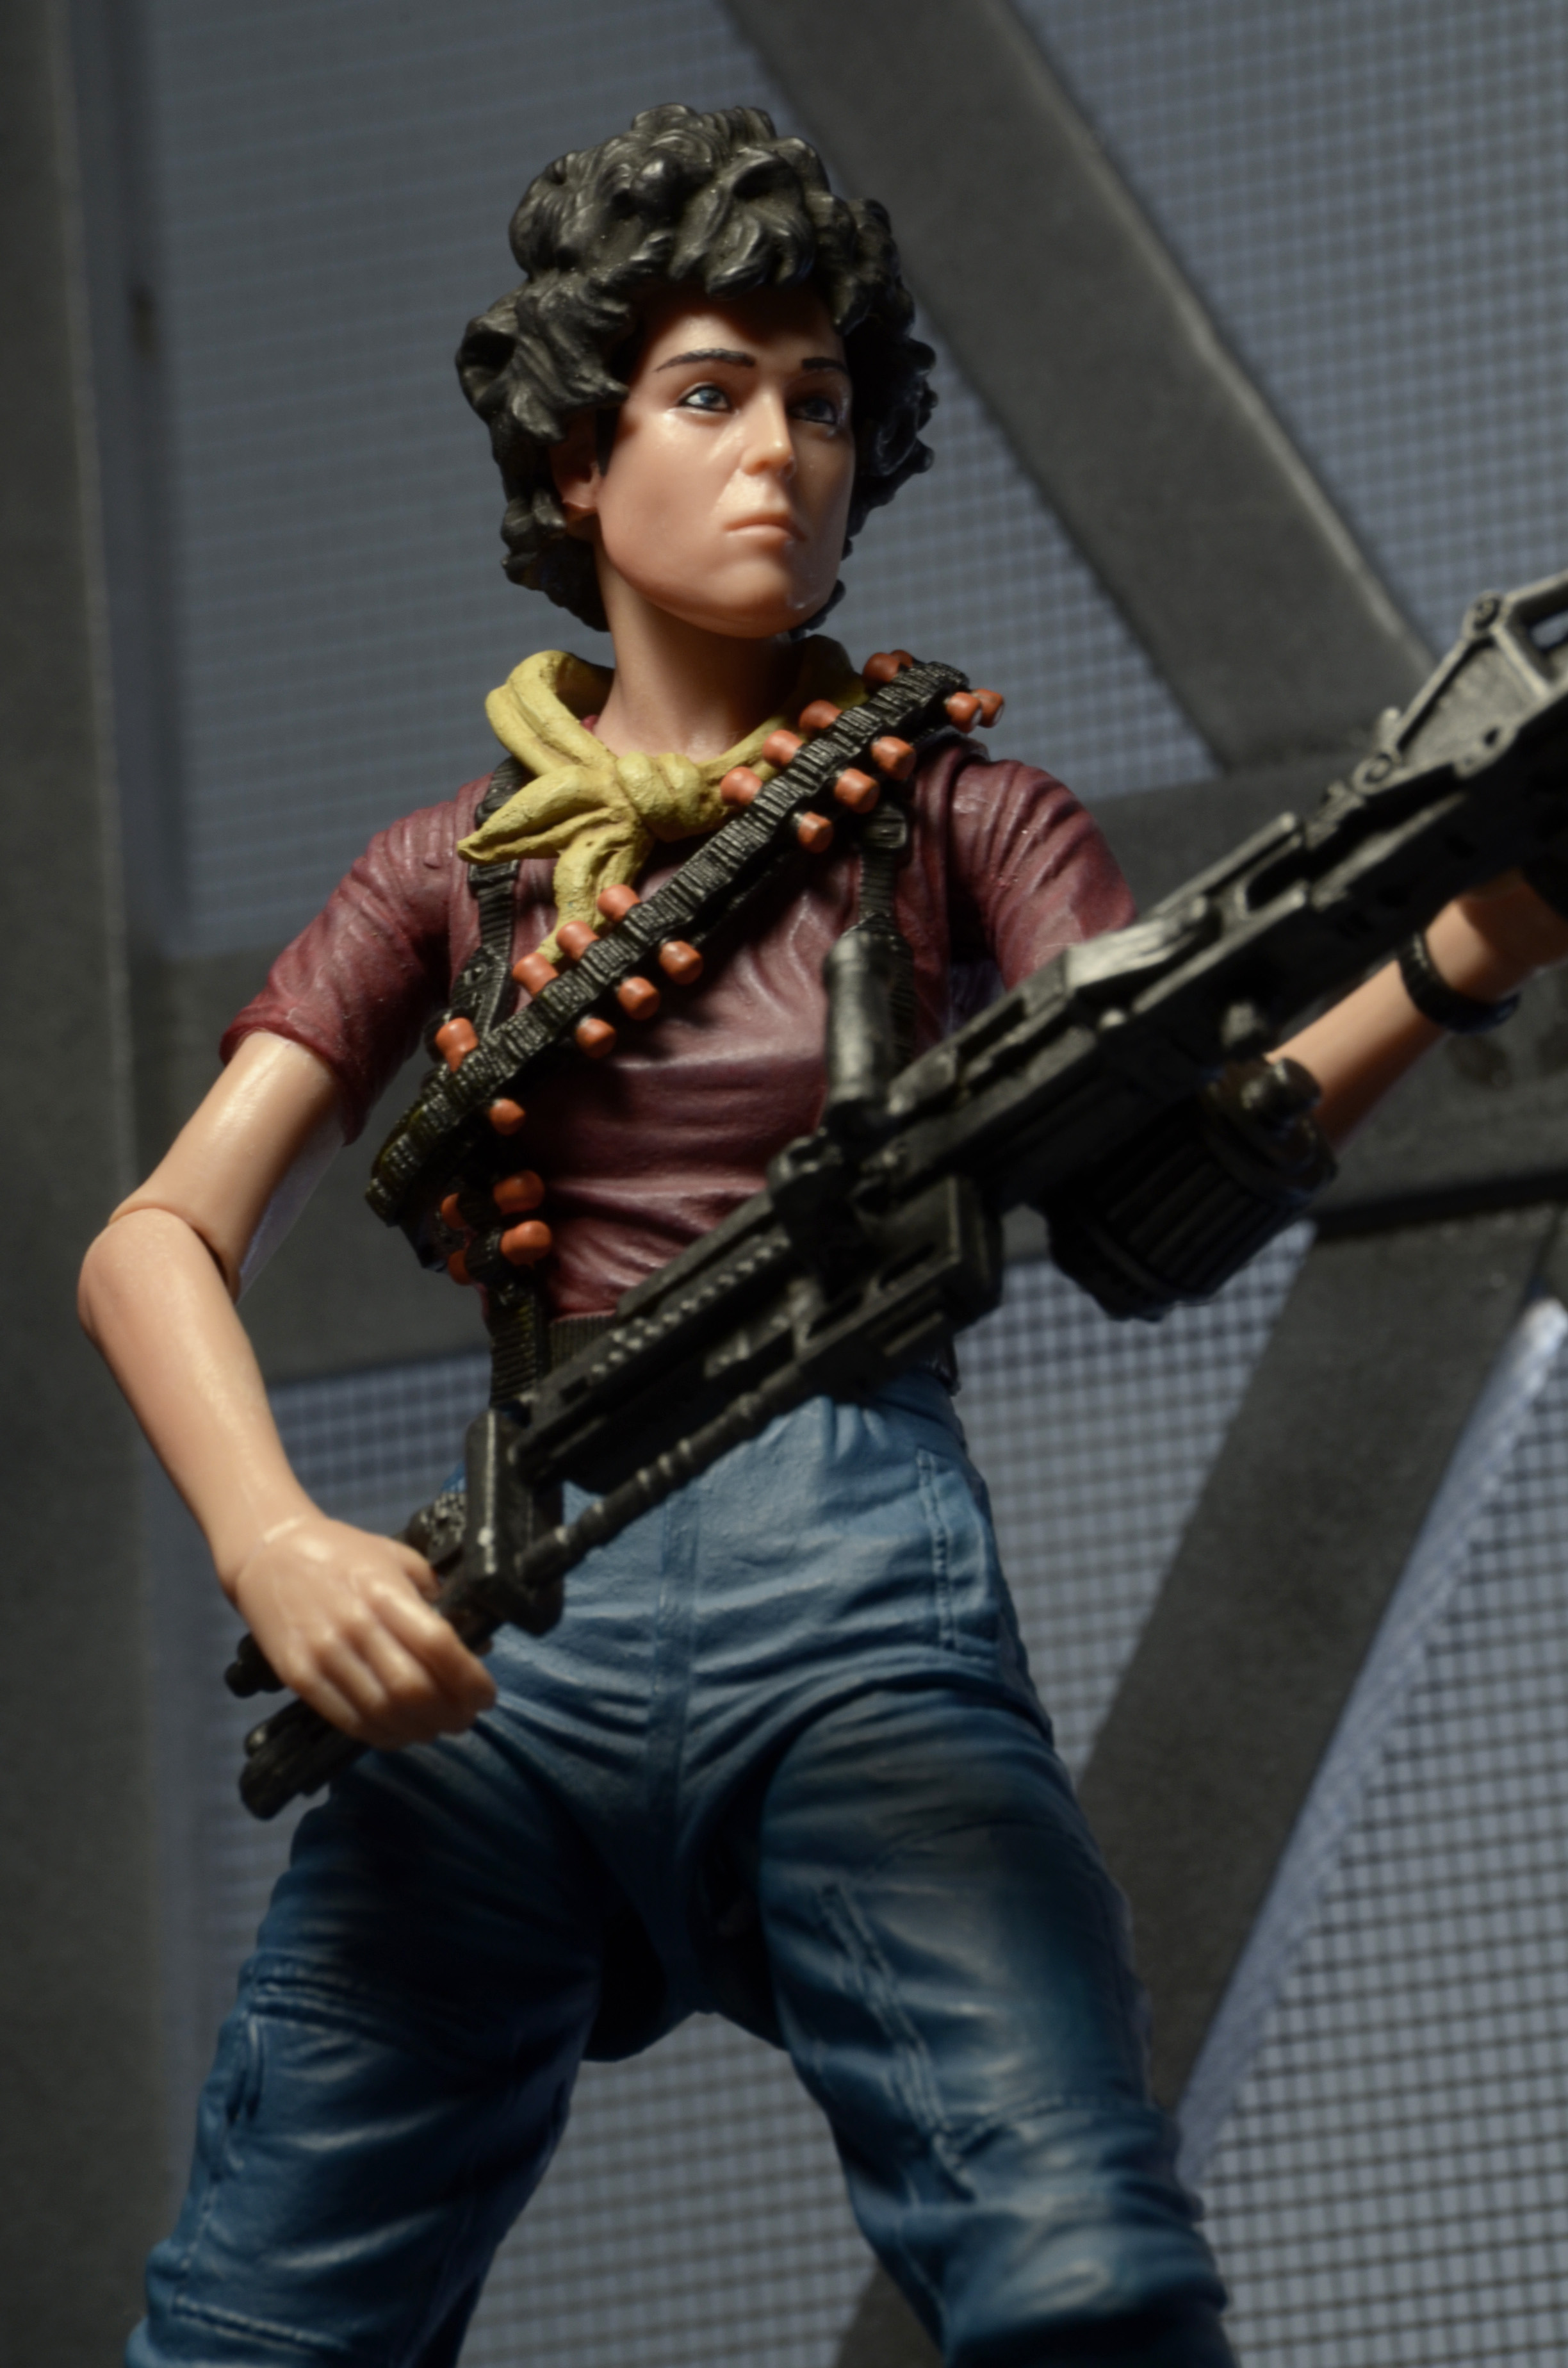 Details On Her 3 Shades Of: All The Details On The Alien Day Exclusive Kenner Tribute